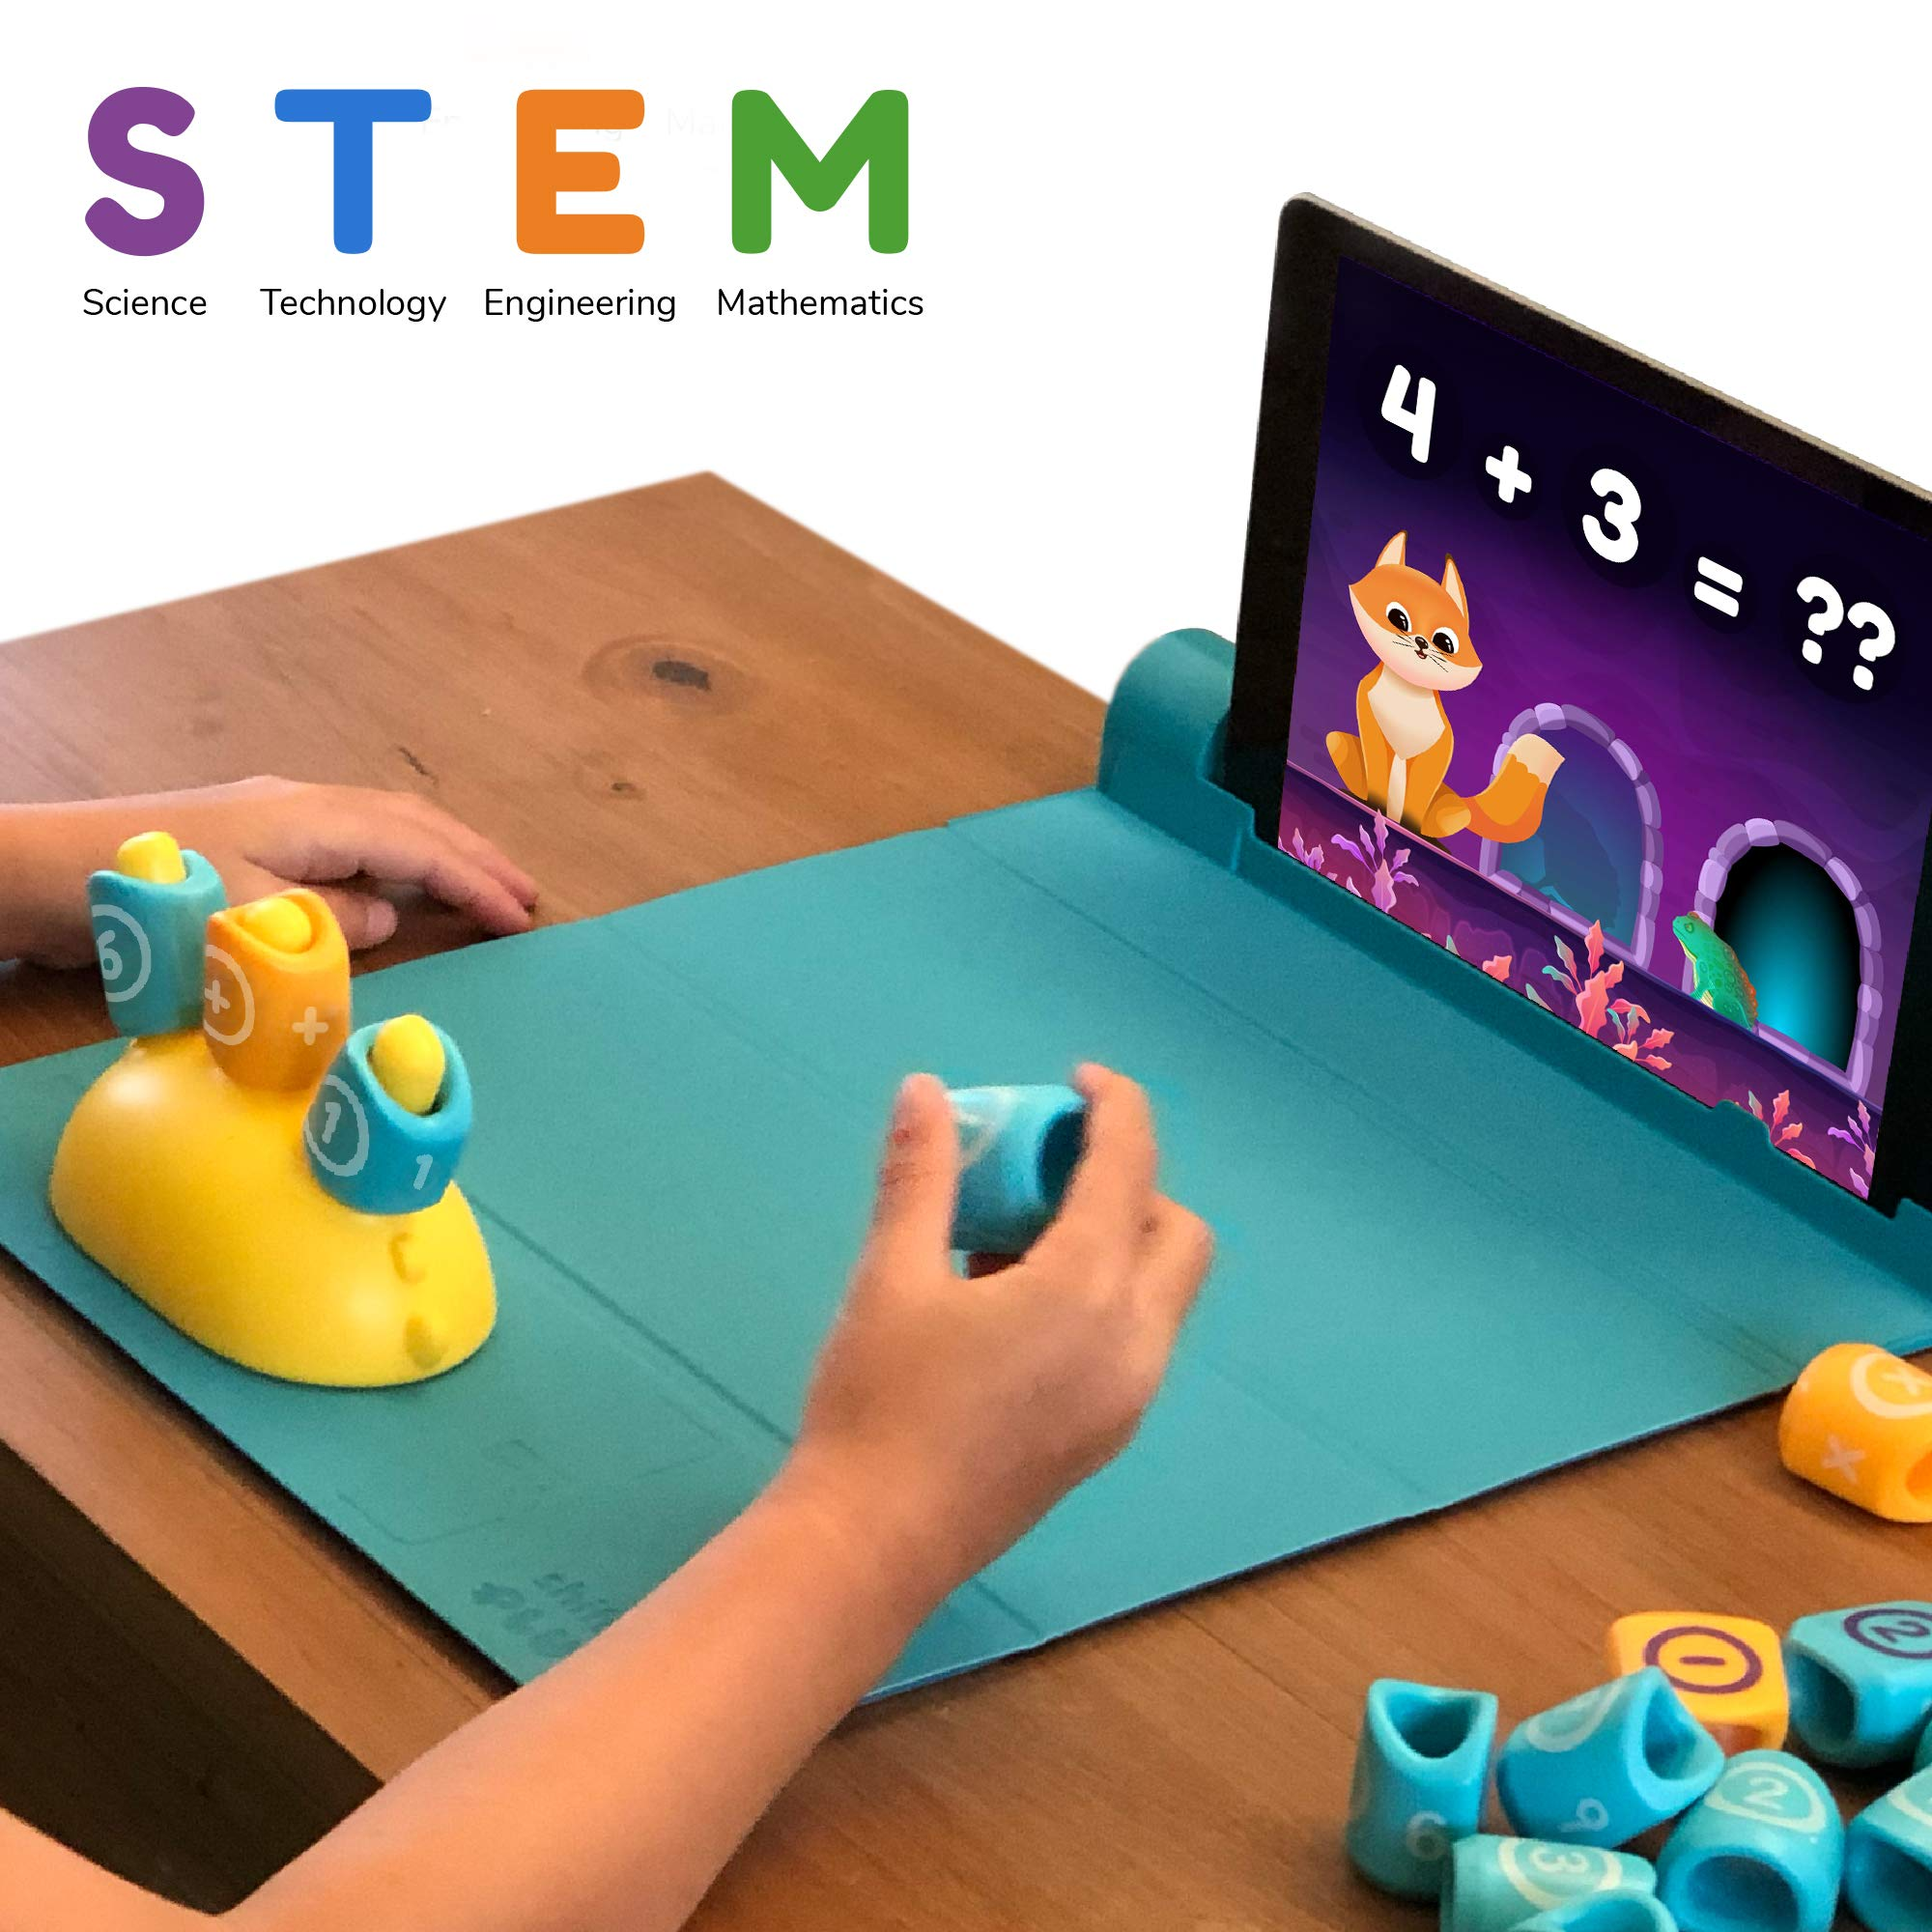 Shifu Plugo Count - Math Game with Stories & Puzzles - Ages 5-10 - STEM Toy (iOS/ Samsung Devices) | Augmented Reality Based Cool Math Games for Boys and Girls by Shifu